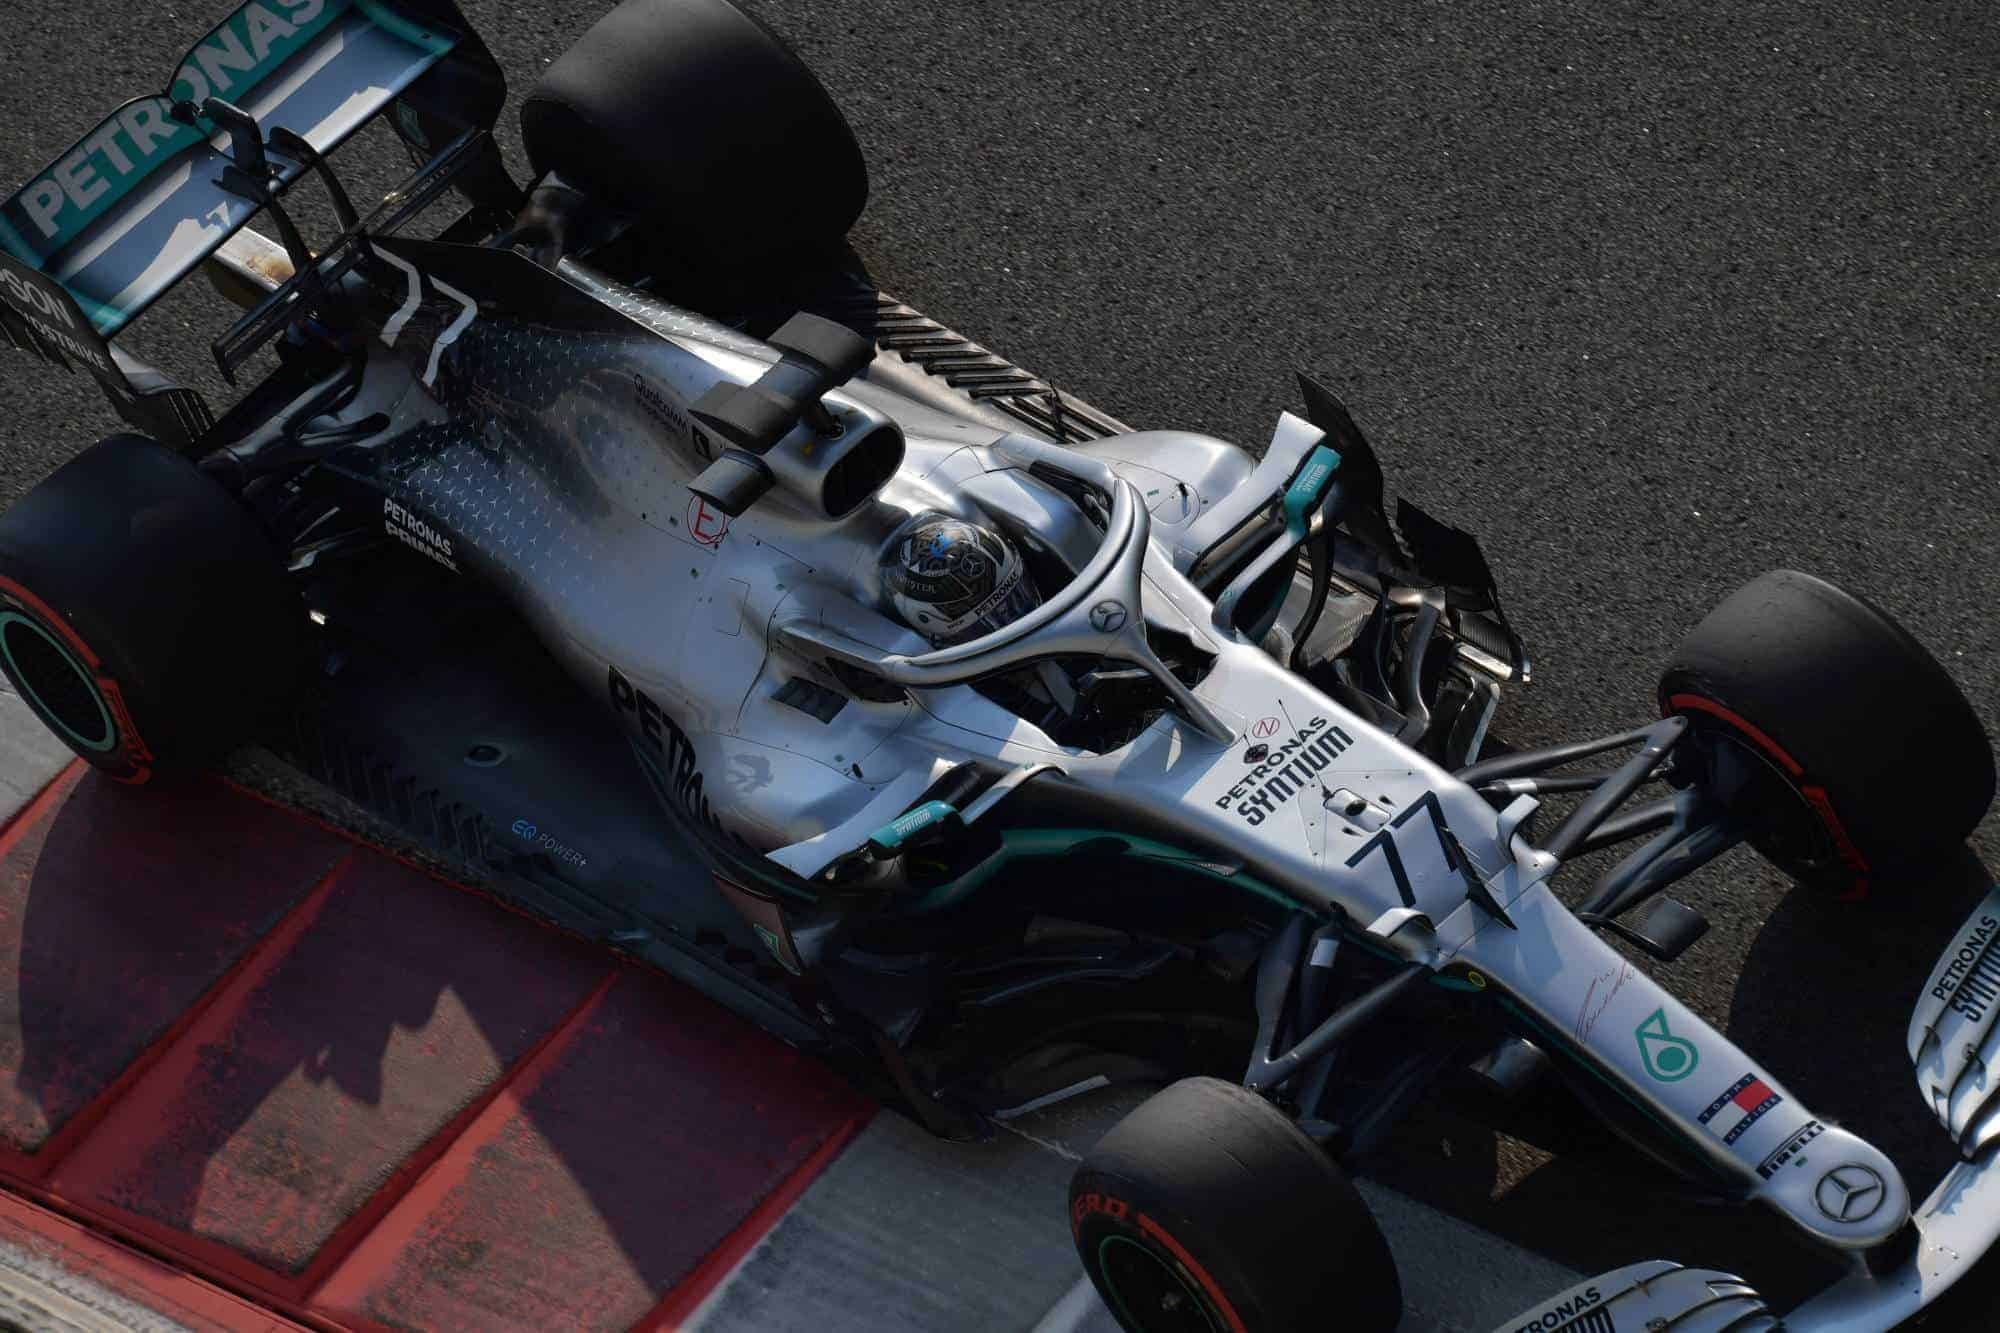 Bottas Mercedes F1 W10 post season Abu Dhabi F1 2019 test Photo Daimler